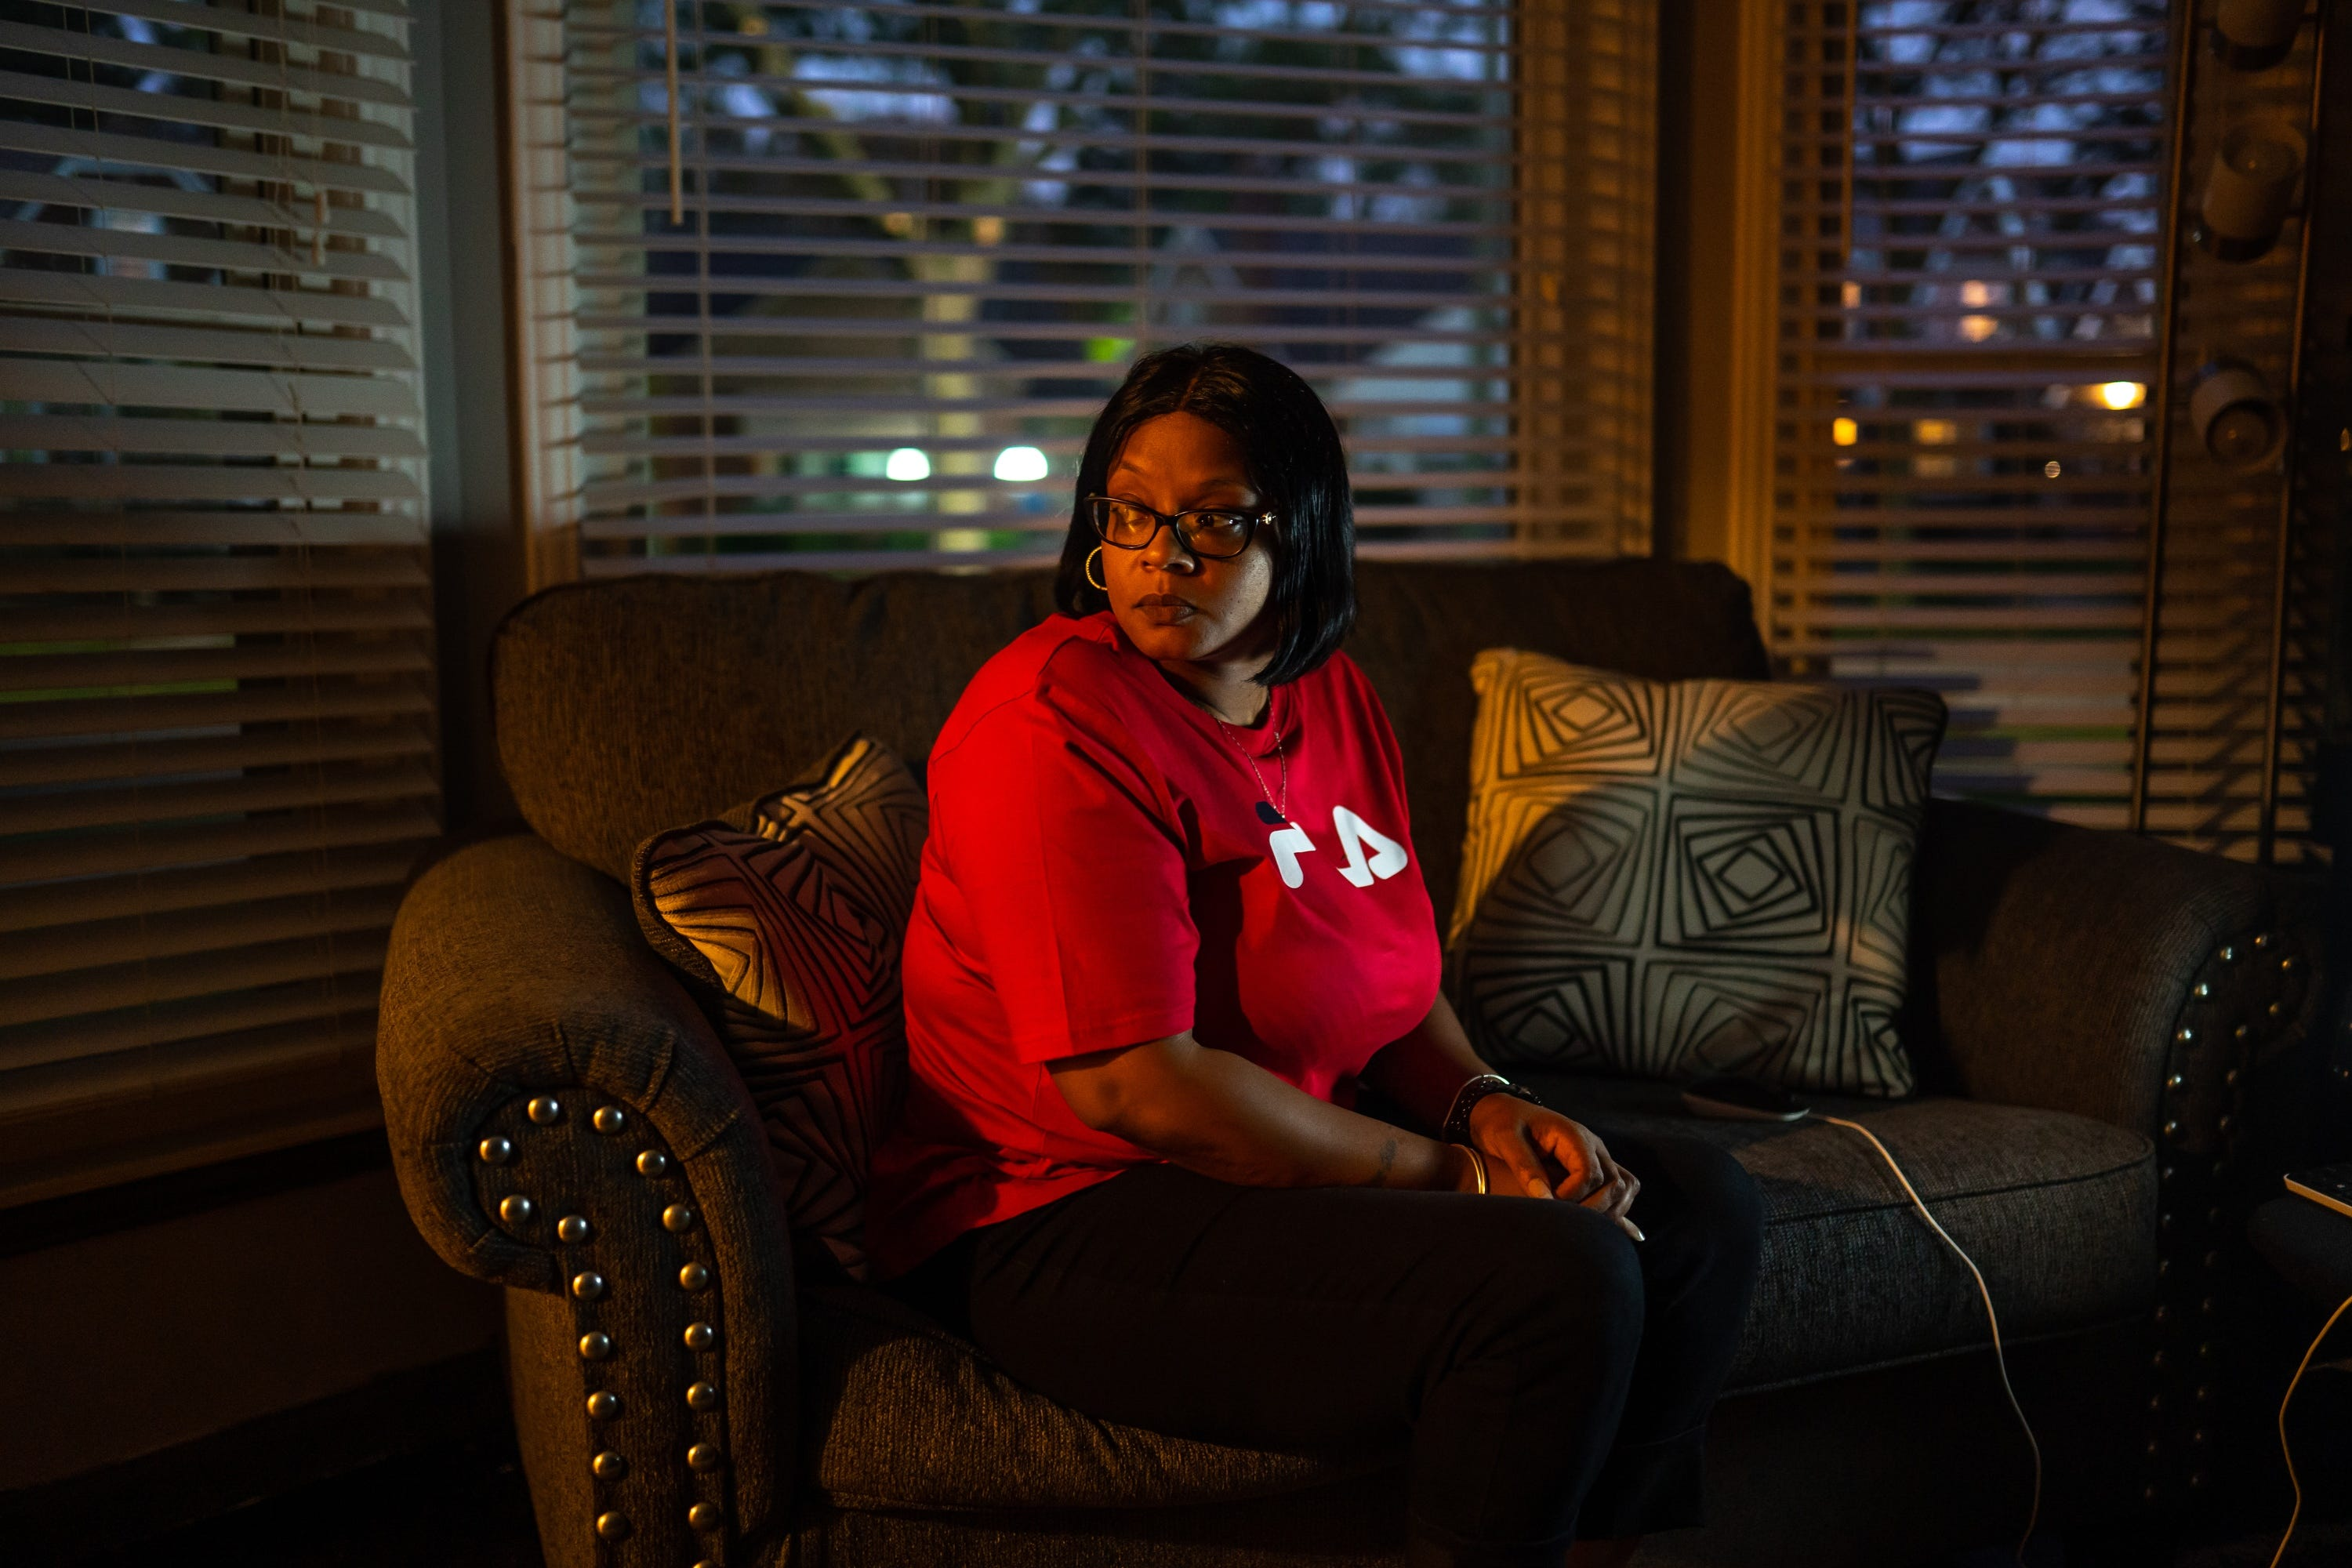 """Detroit resident Nyosha Fowler said her recovery from a botched plastic surgery procedure in 2015 is """"still every day."""" She had to relearn how to eat, how to stand, how to walk."""